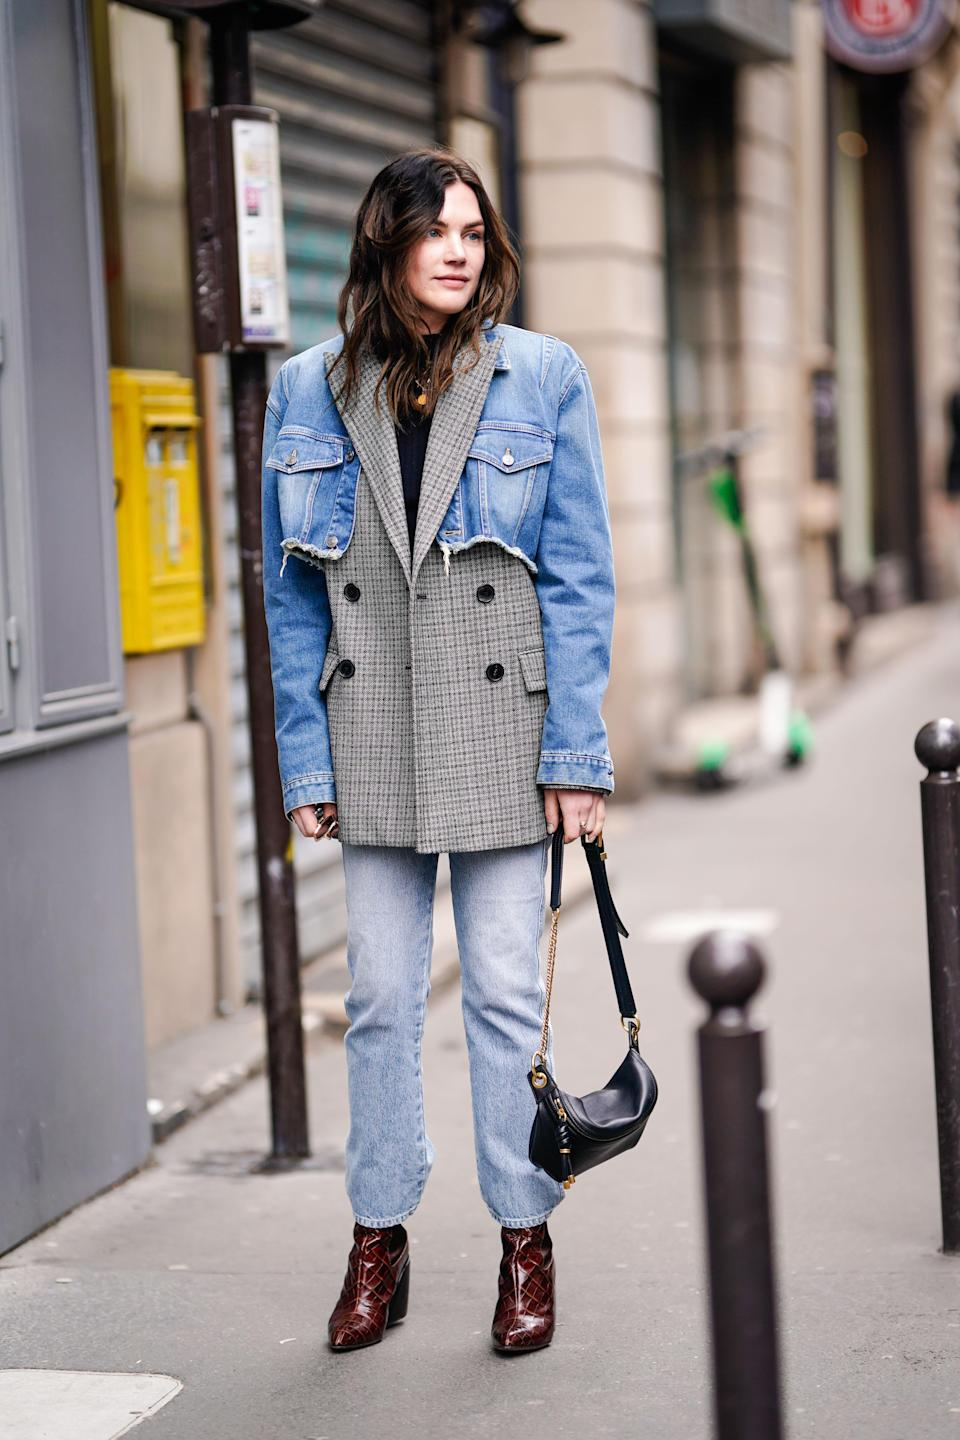 Maybe the most creative styling we've seen: a cropped denim jacket over a blazer, paired with basic blue jeans.